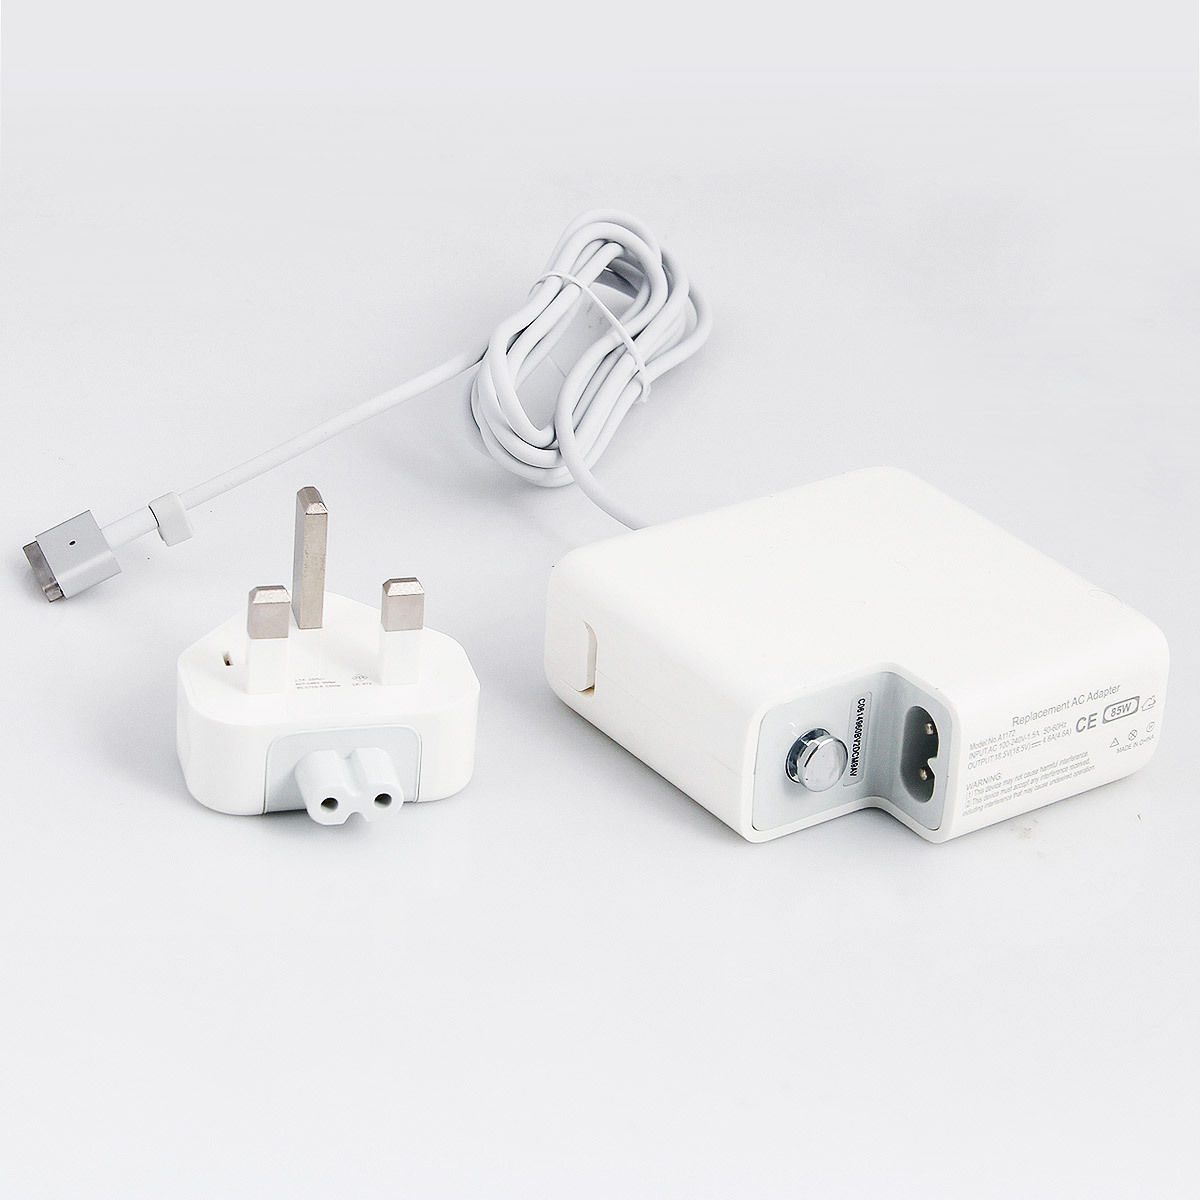 45W MagSafe 2 Power Adapter for MacBook Air A1424 A1436 A1466